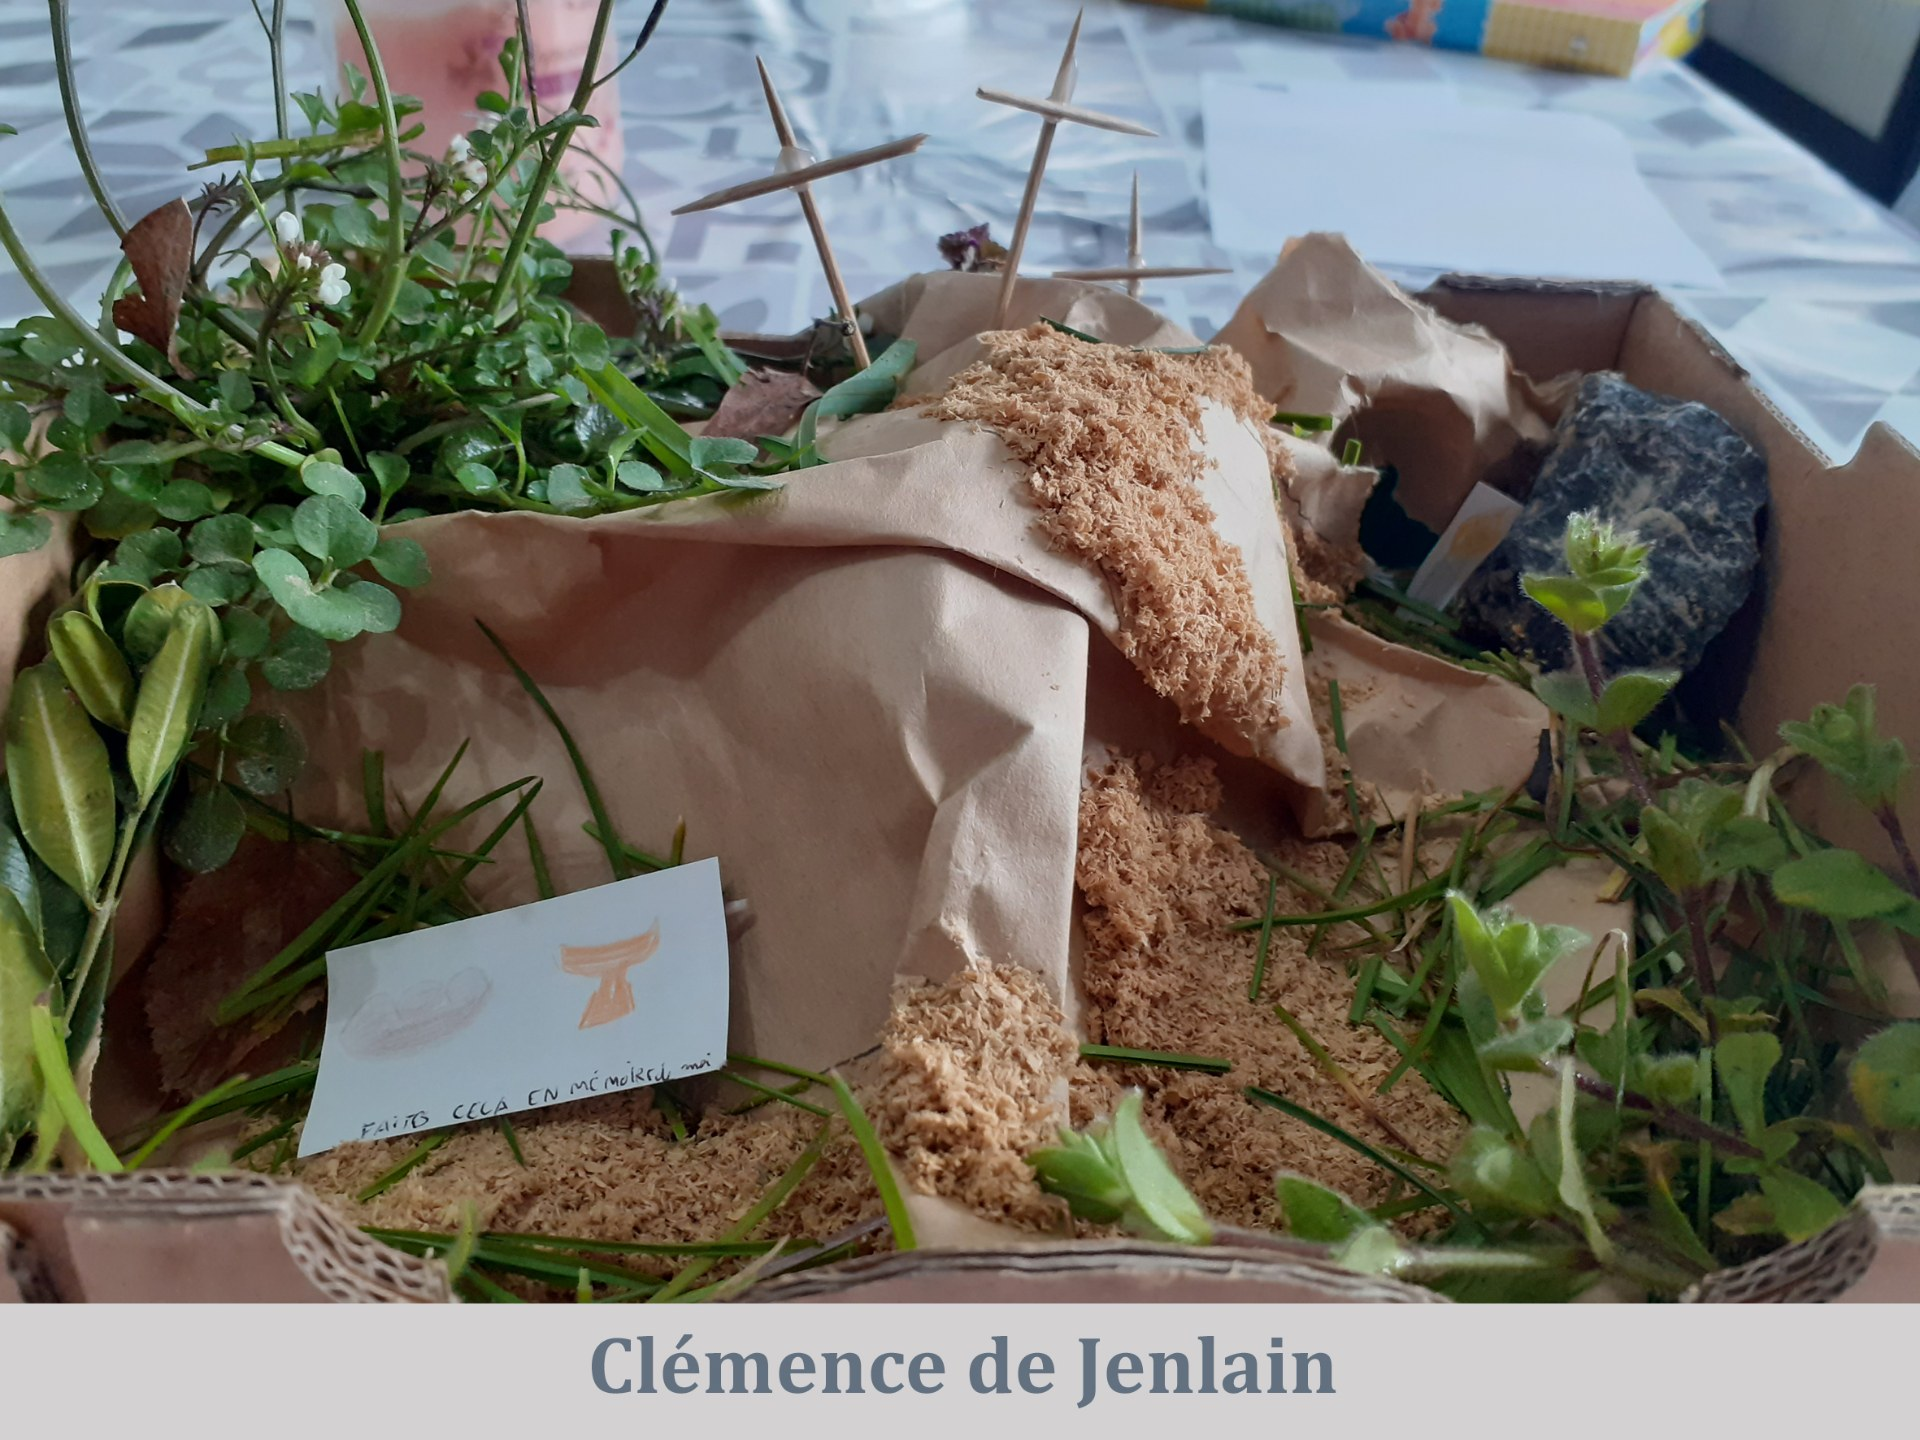 Jardin_Paques_2021 Clemence